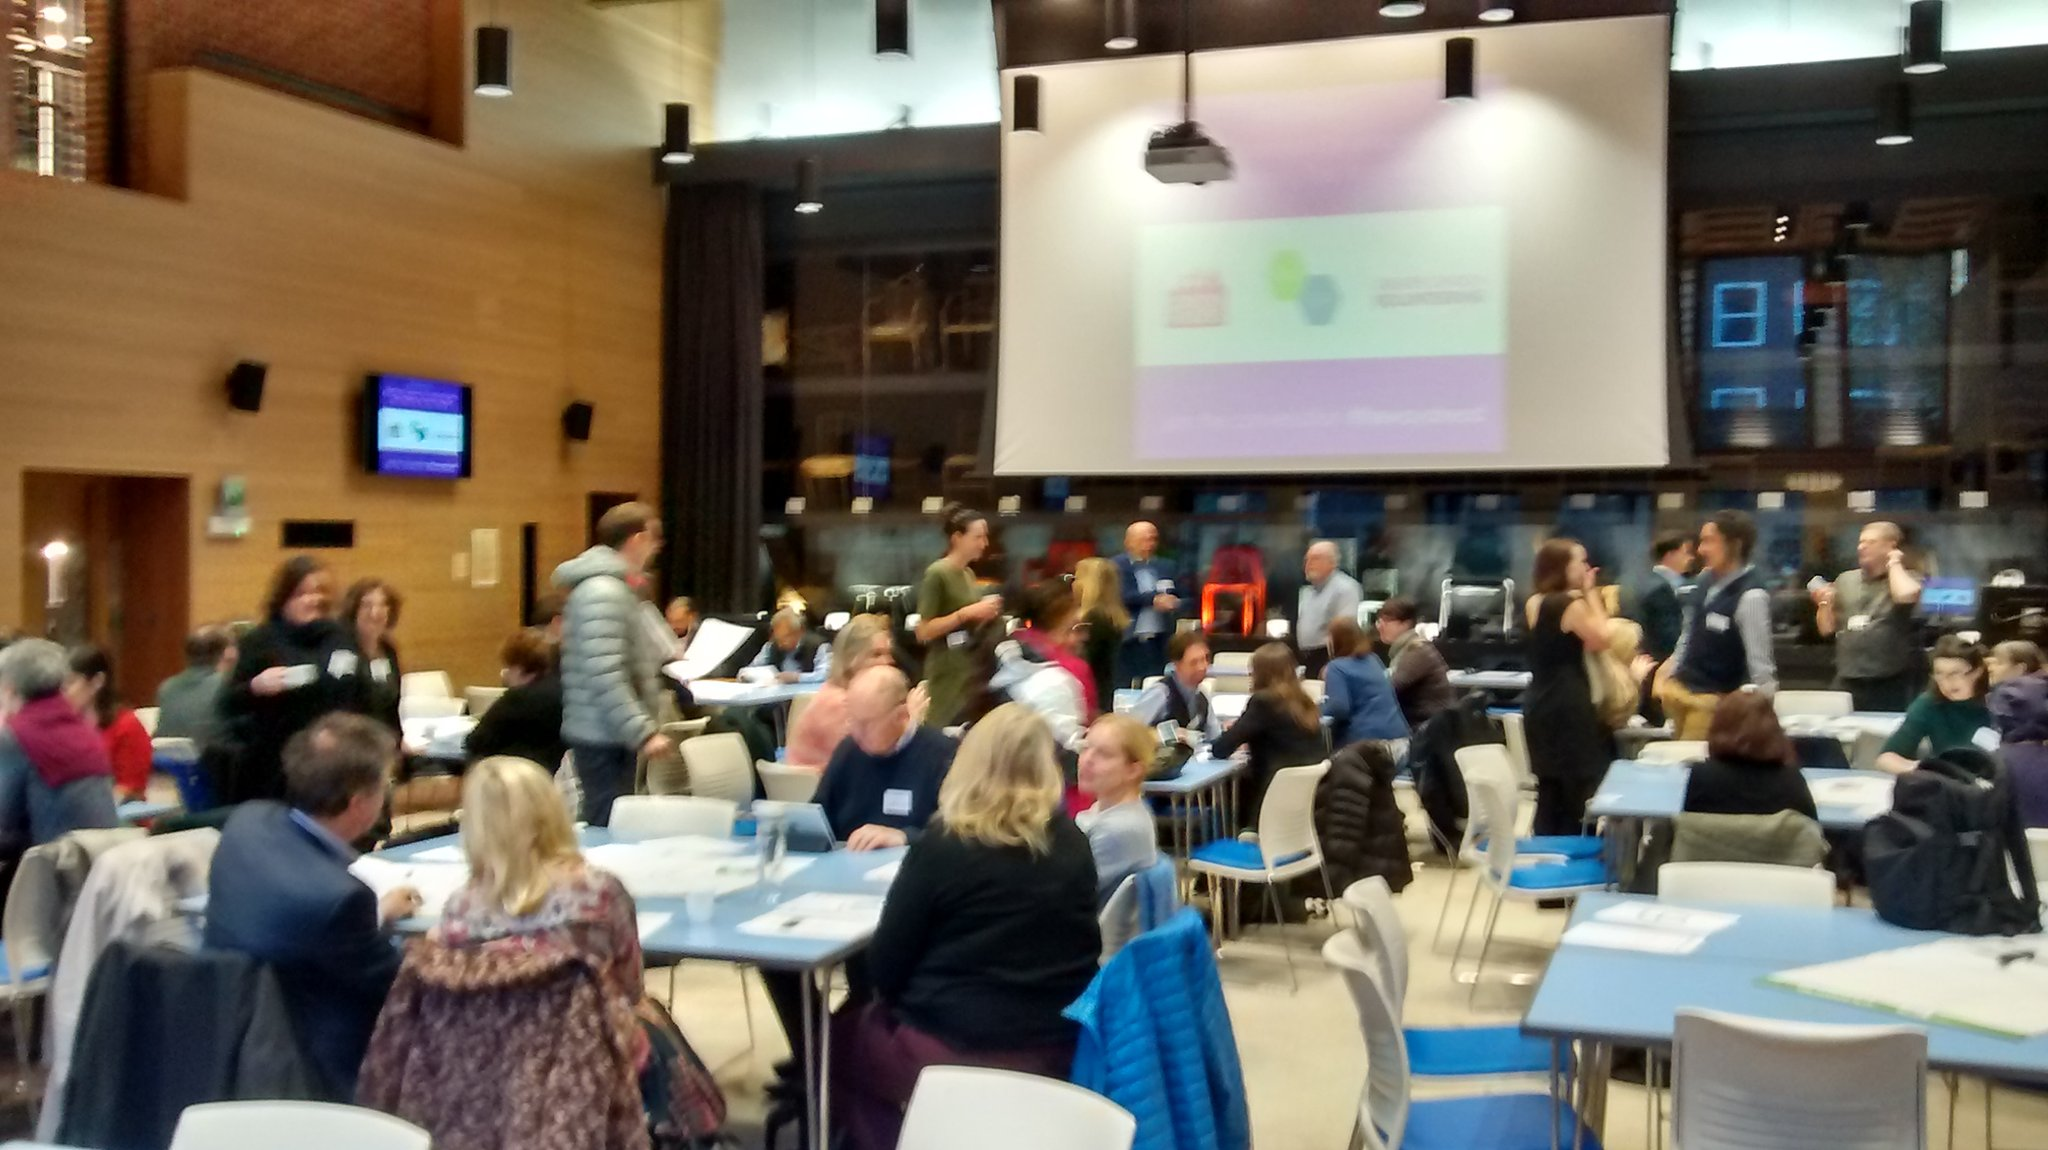 #thewayahead event about to start @LVSCnews @SuperhighwaysUK @LondonFunders gonna co-produce something https://t.co/02BZqoTj9n